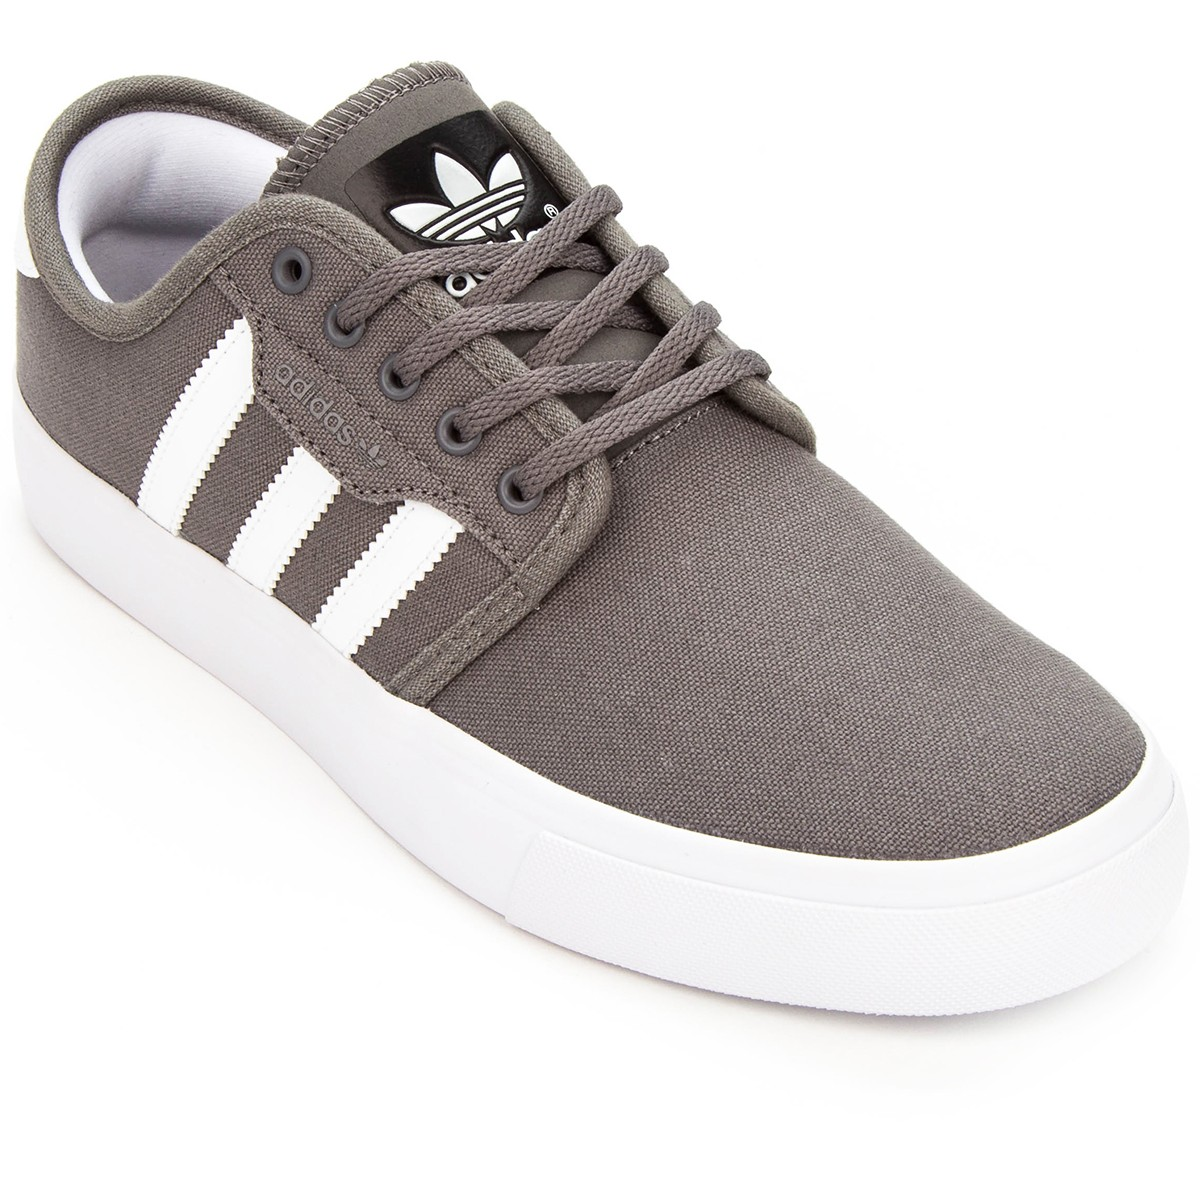 adidas shoes high tops for boys>>adidas superstar 80s ...